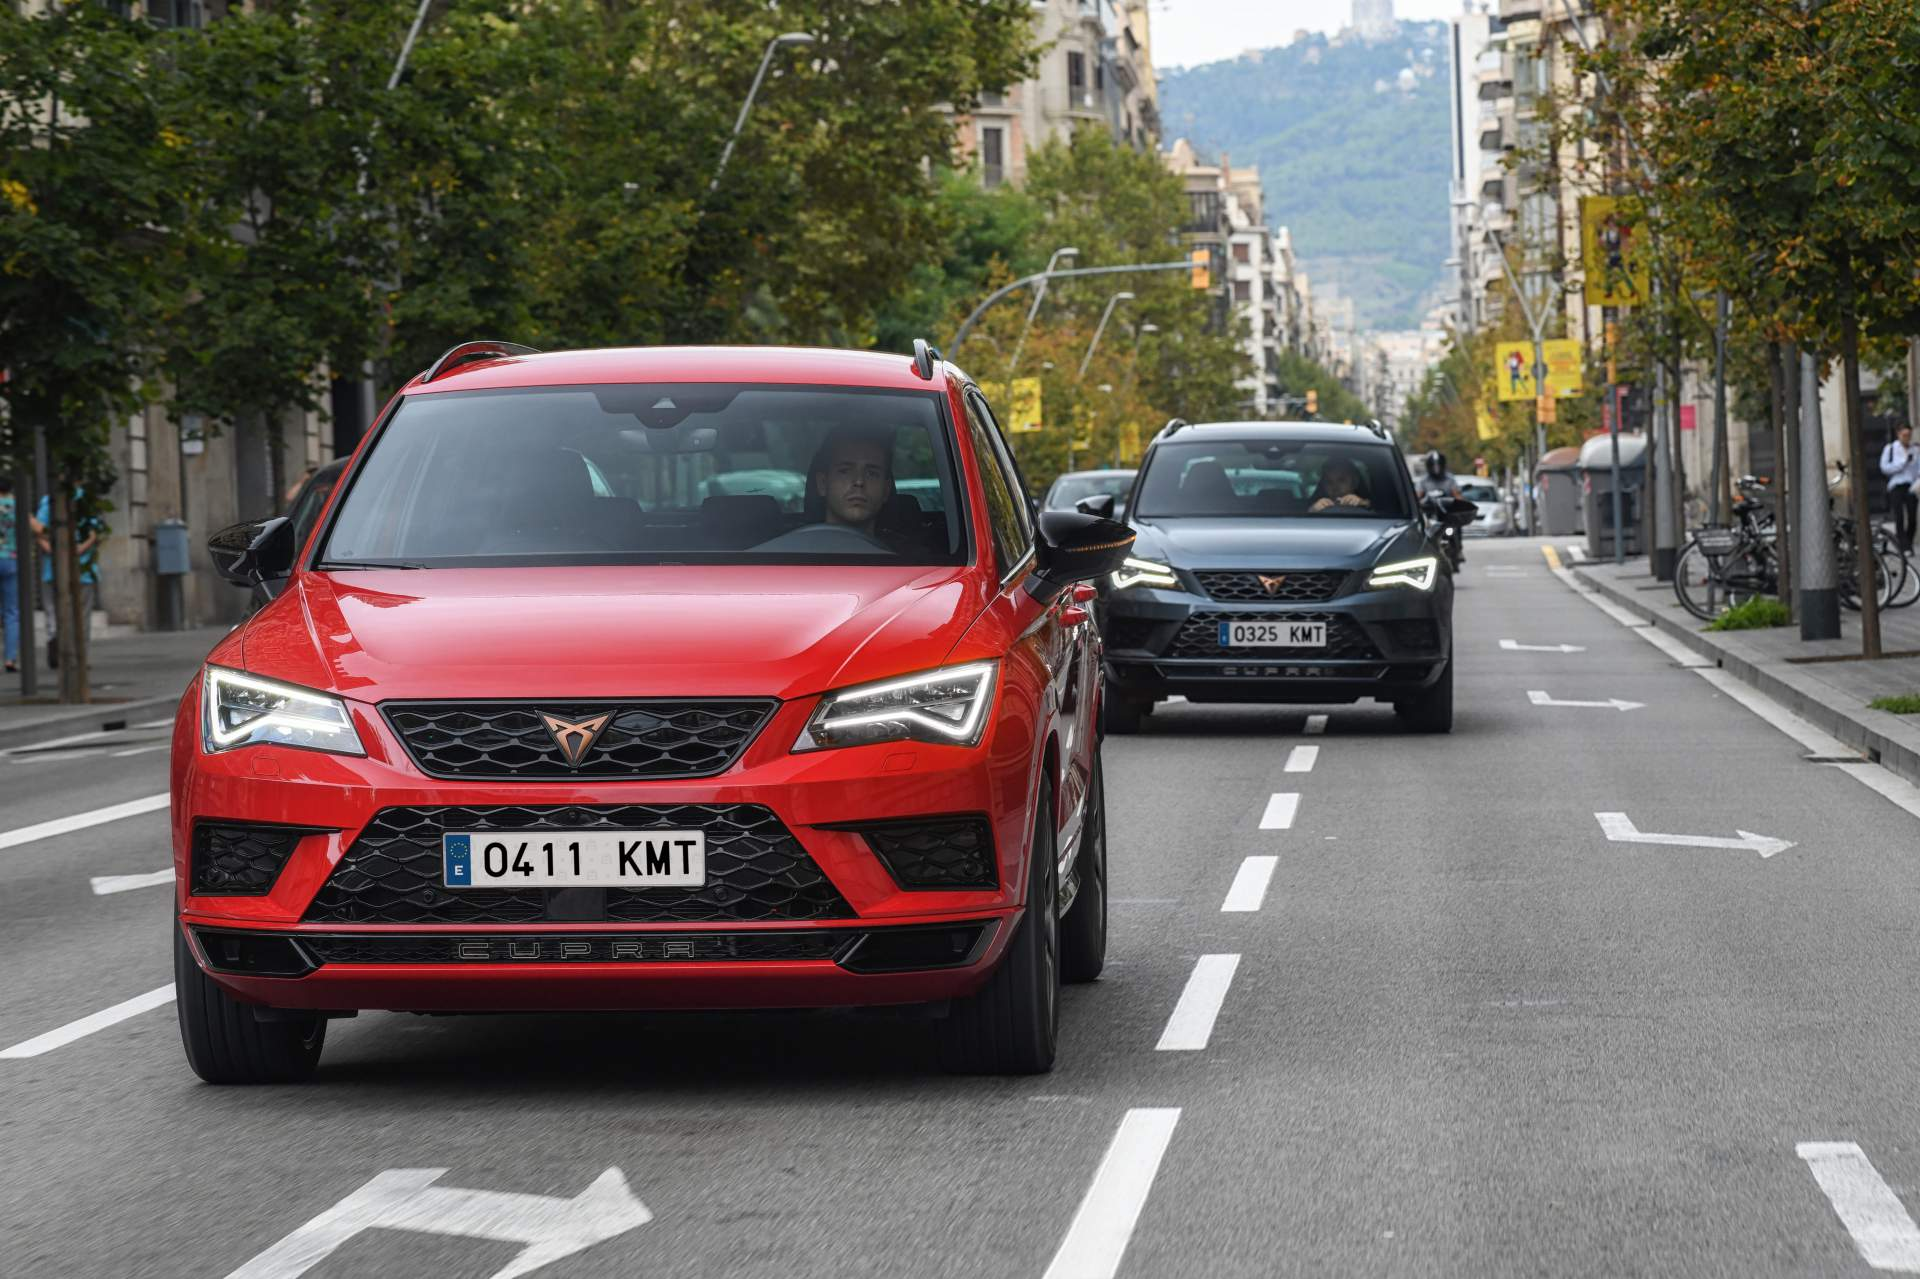 cupra ateca is a budget porsche macan but not perfect says review autoevolution